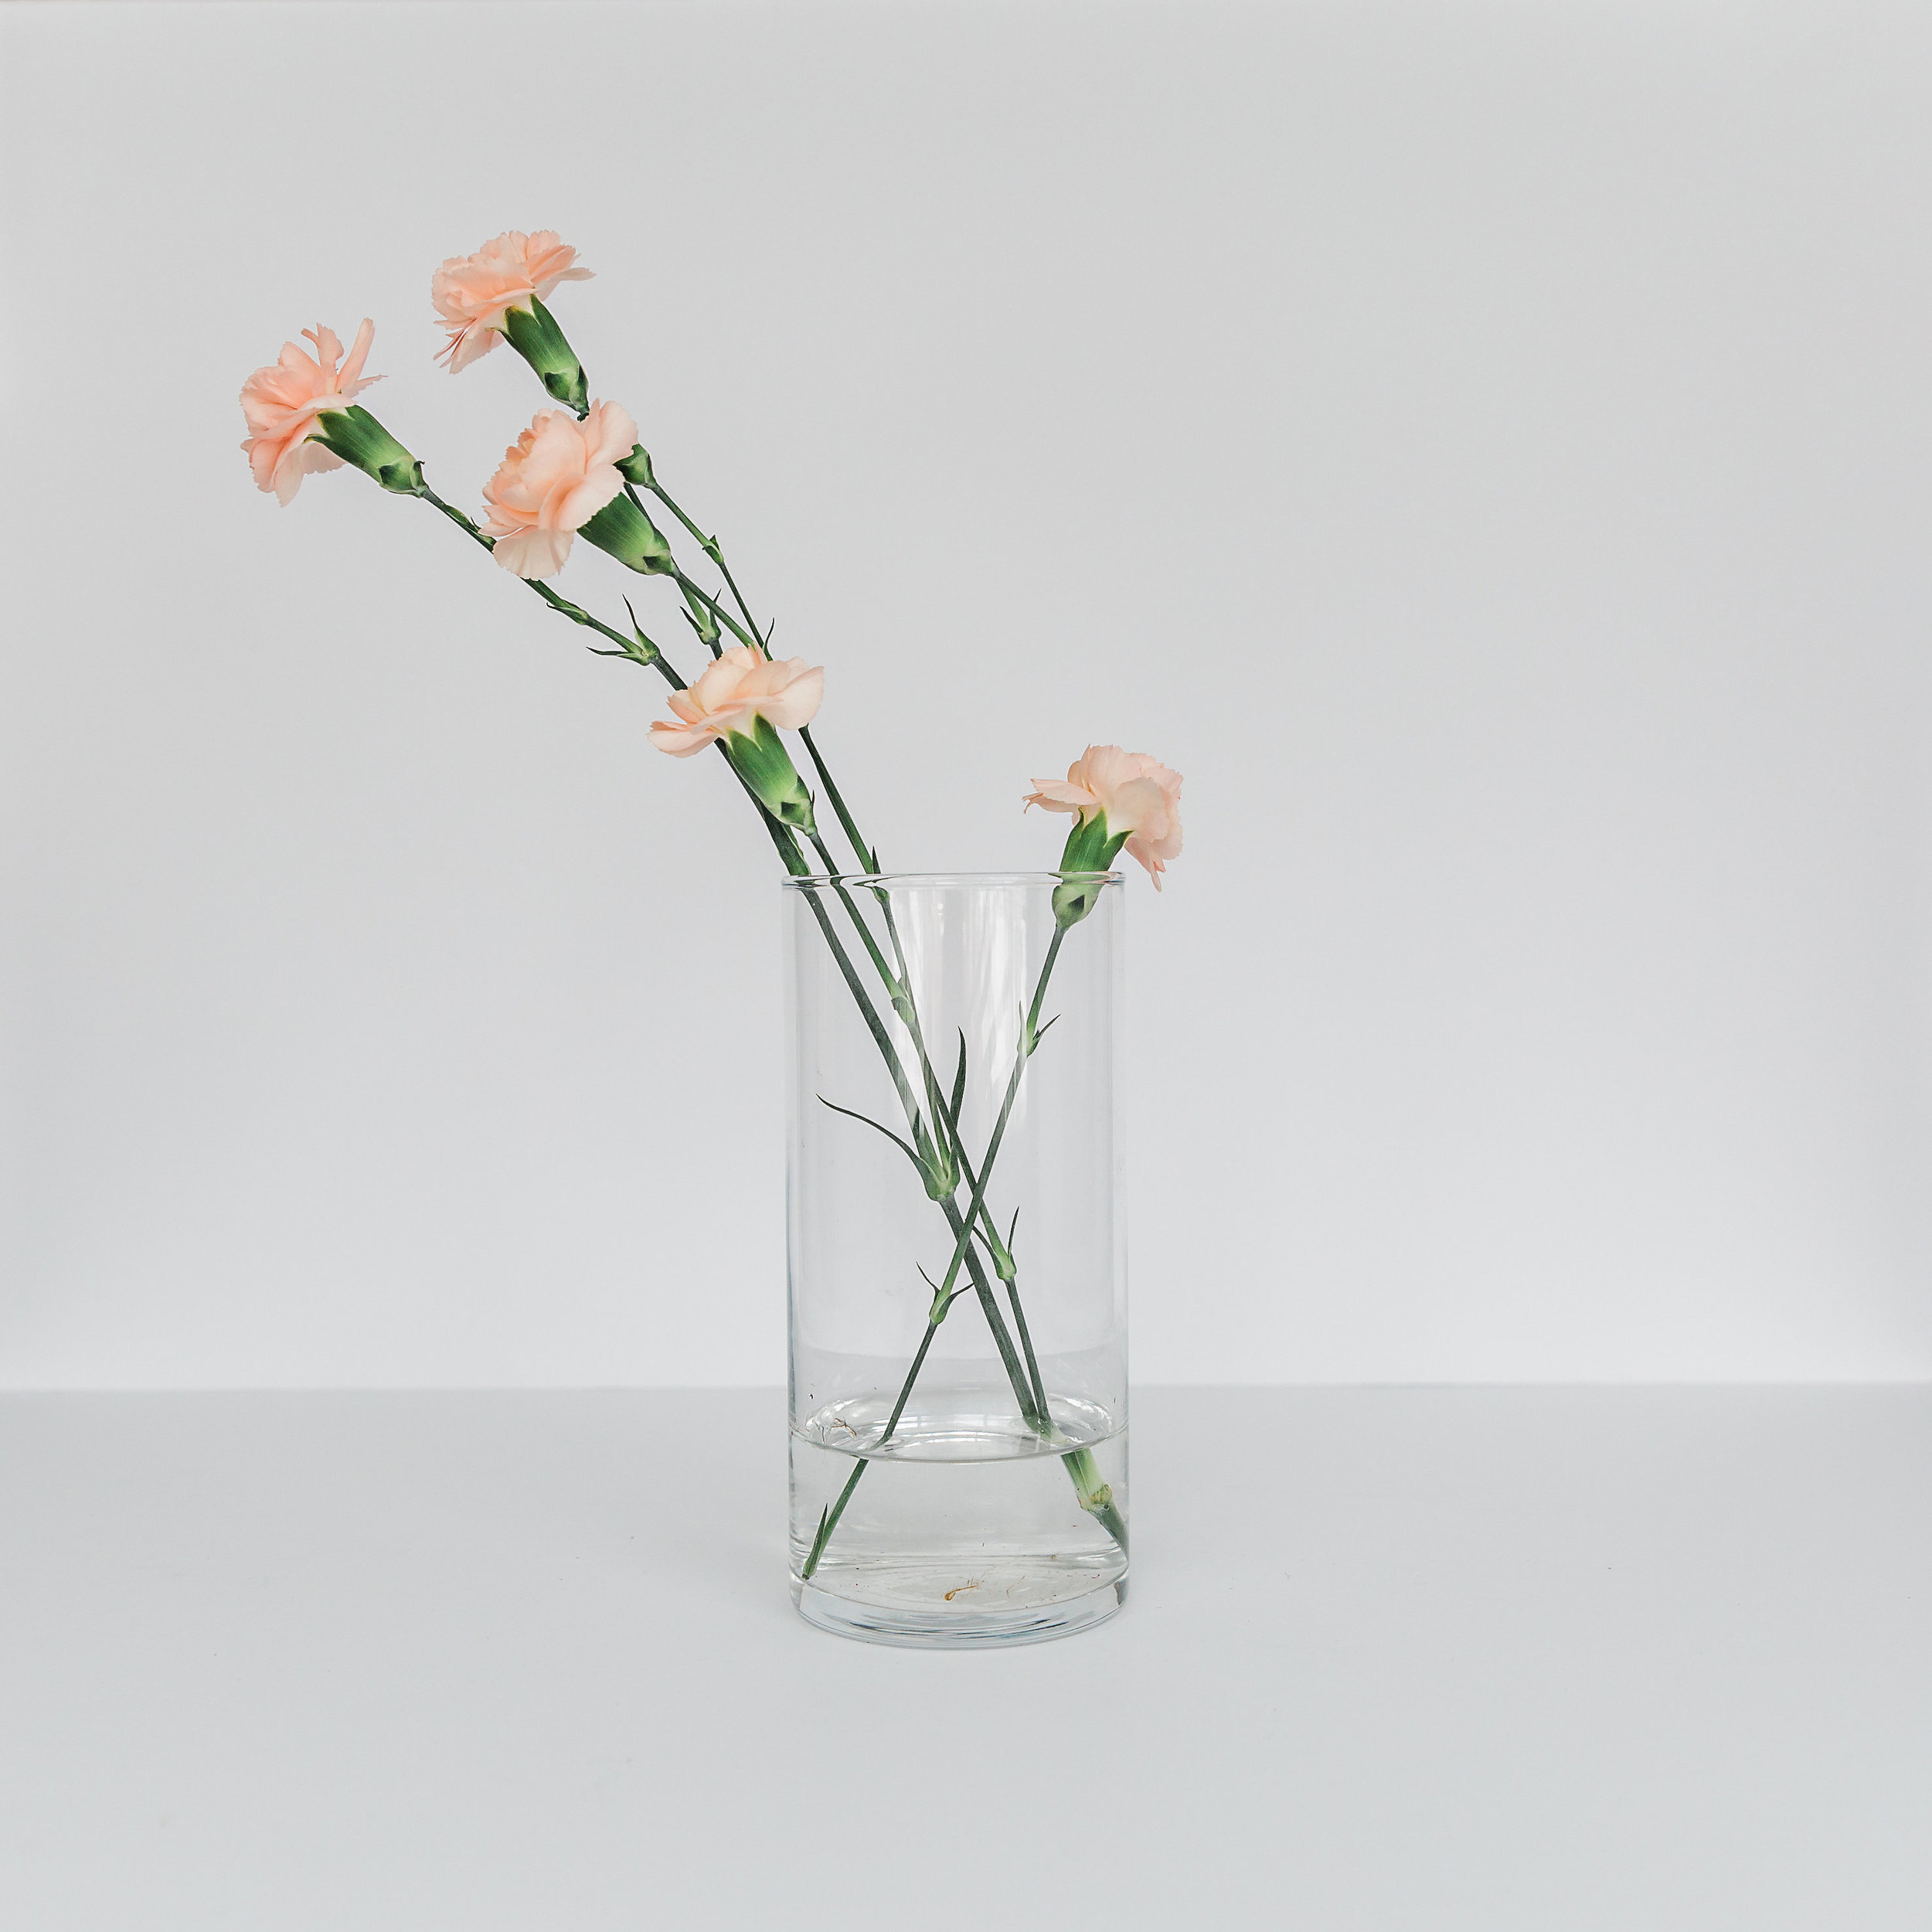 Cylinder Vase  height: varies 6 inches to 12 inches >>>$1.00 each<<<